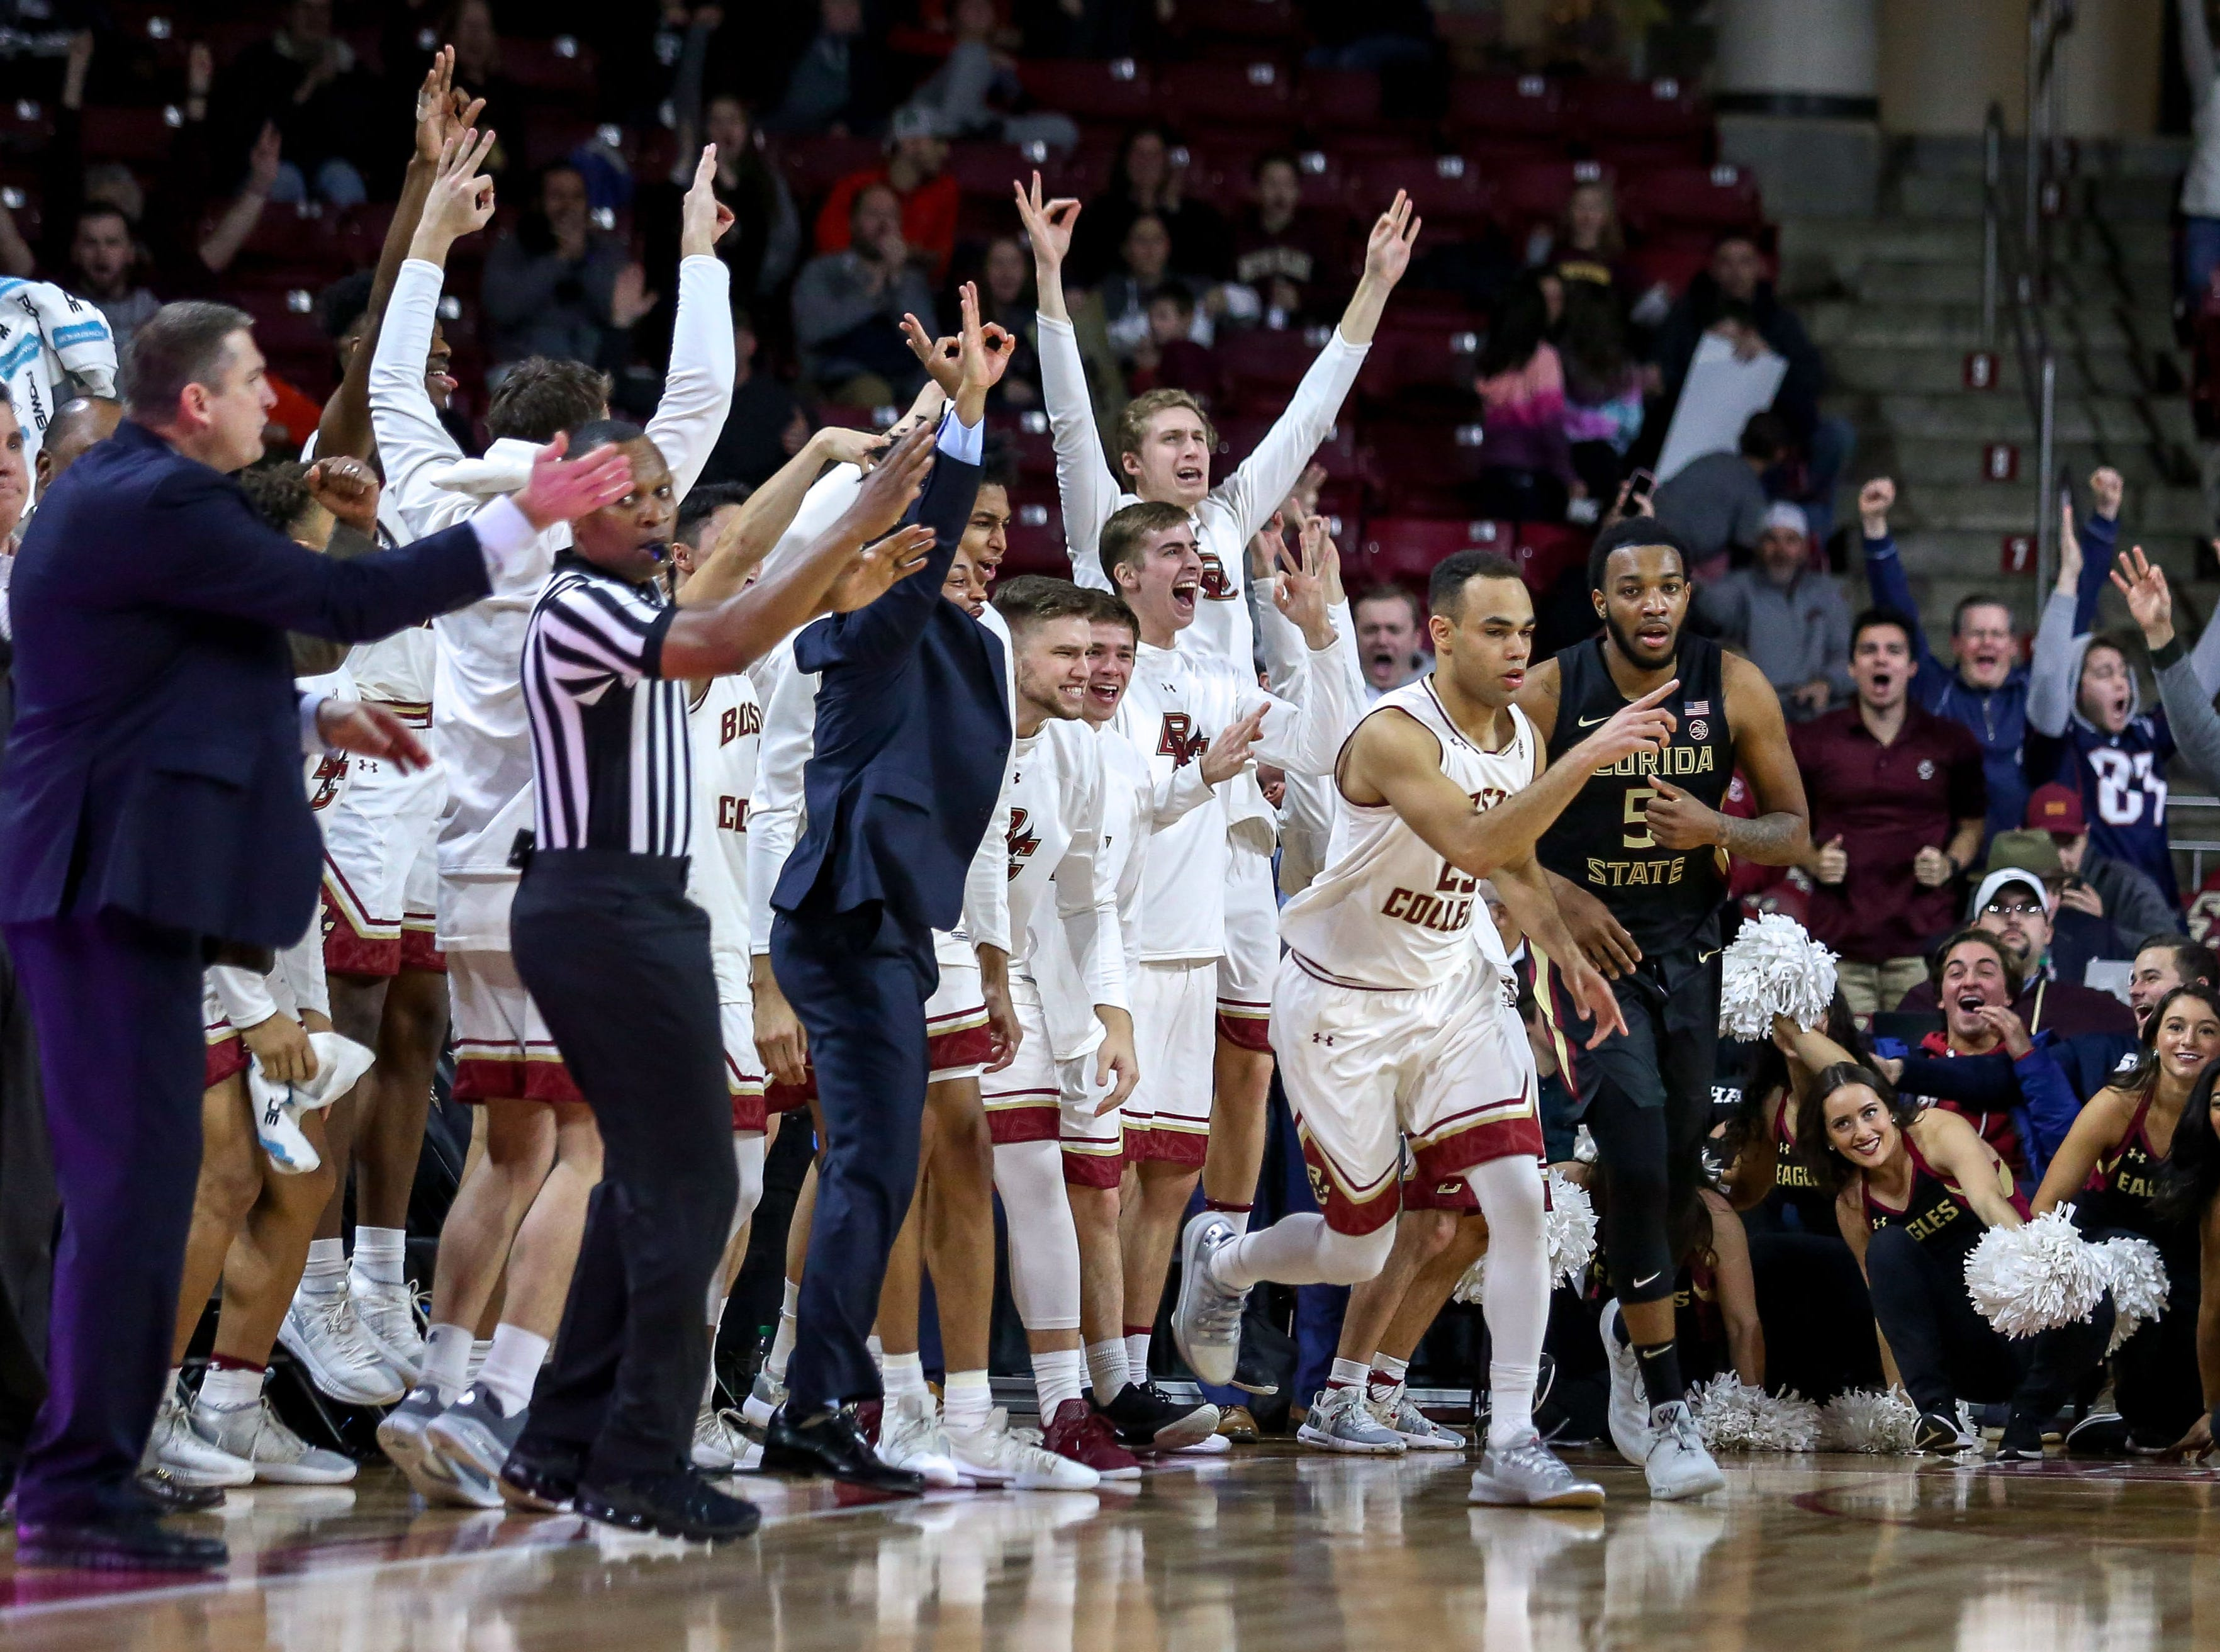 Jan 20, 2019; Chestnut Hill, MA, USA; Boston College Eagles guard Jordan Chatman (25) and the Boston College Eagles bench reacts against the Florida State Seminoles during the second half at Conte Forum. Mandatory Credit: Paul Rutherford-USA TODAY Sports